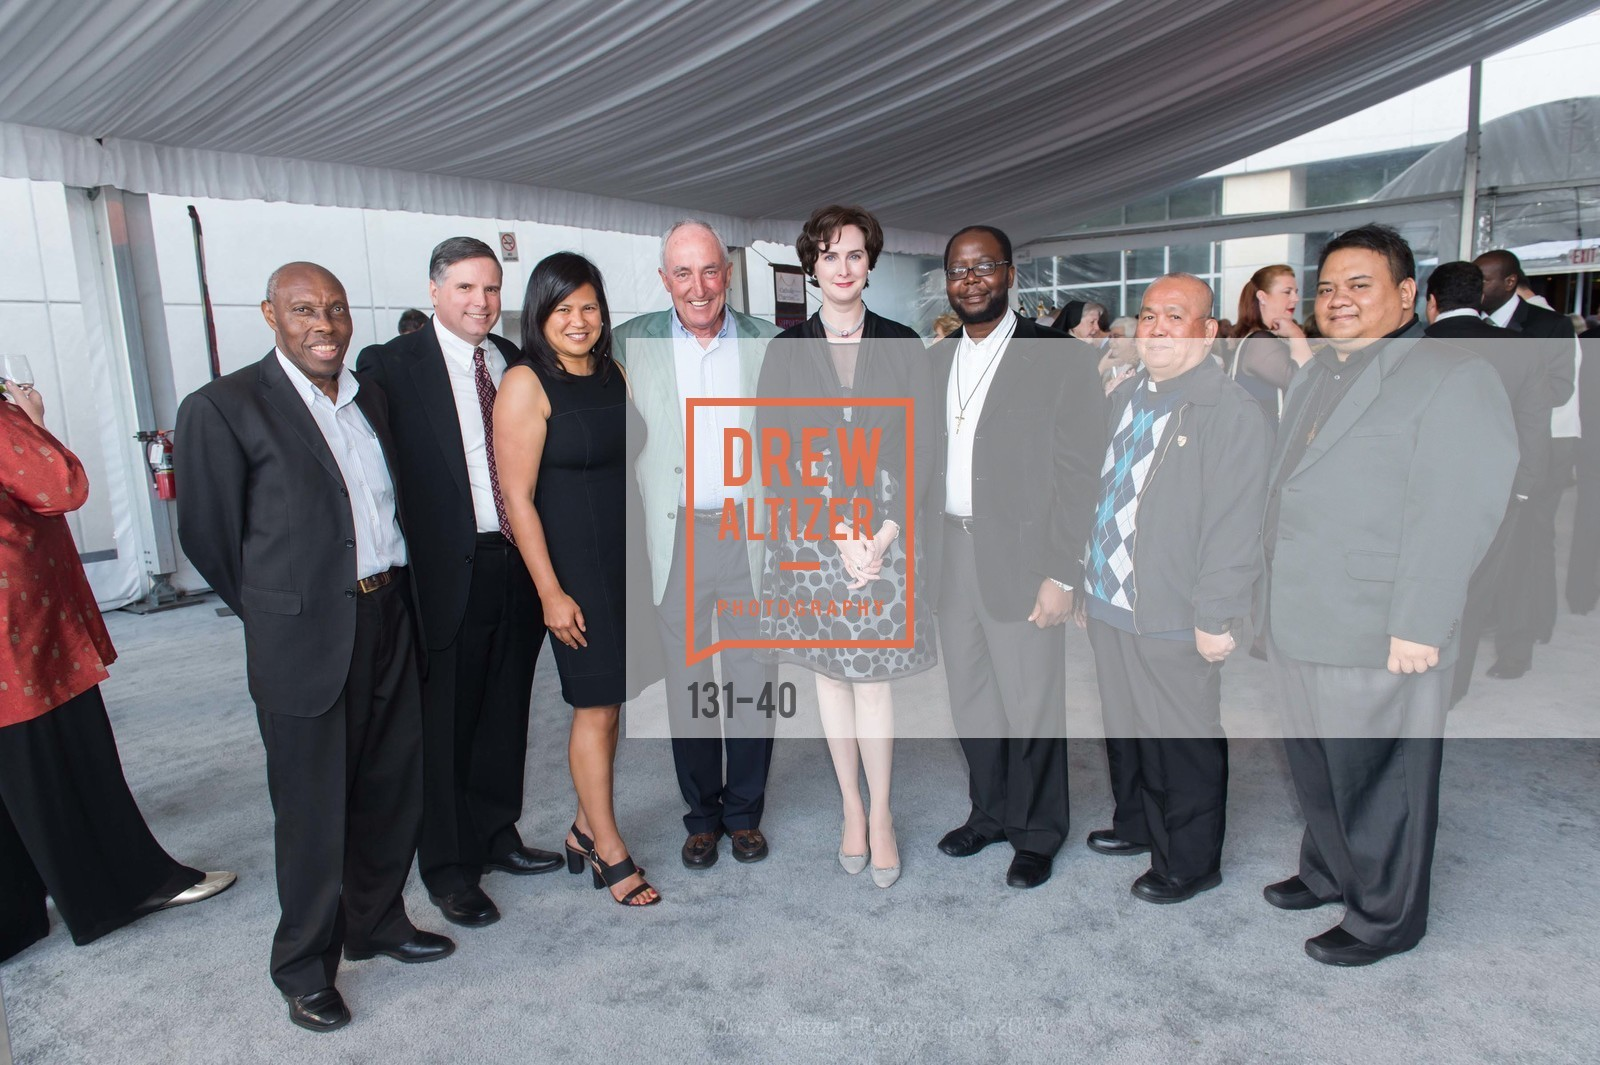 Agustin Karekezi, Hugo Kostelni, Judy Kostelni, Martin Daly, Raymond Wangala, Ubunto Suico, Francisco Bustamante,  Catholic Charities Loaves & Fishes, St. Regis, April 18th, 2015,Drew Altizer, Drew Altizer Photography, full-service event agency, private events, San Francisco photographer, photographer California